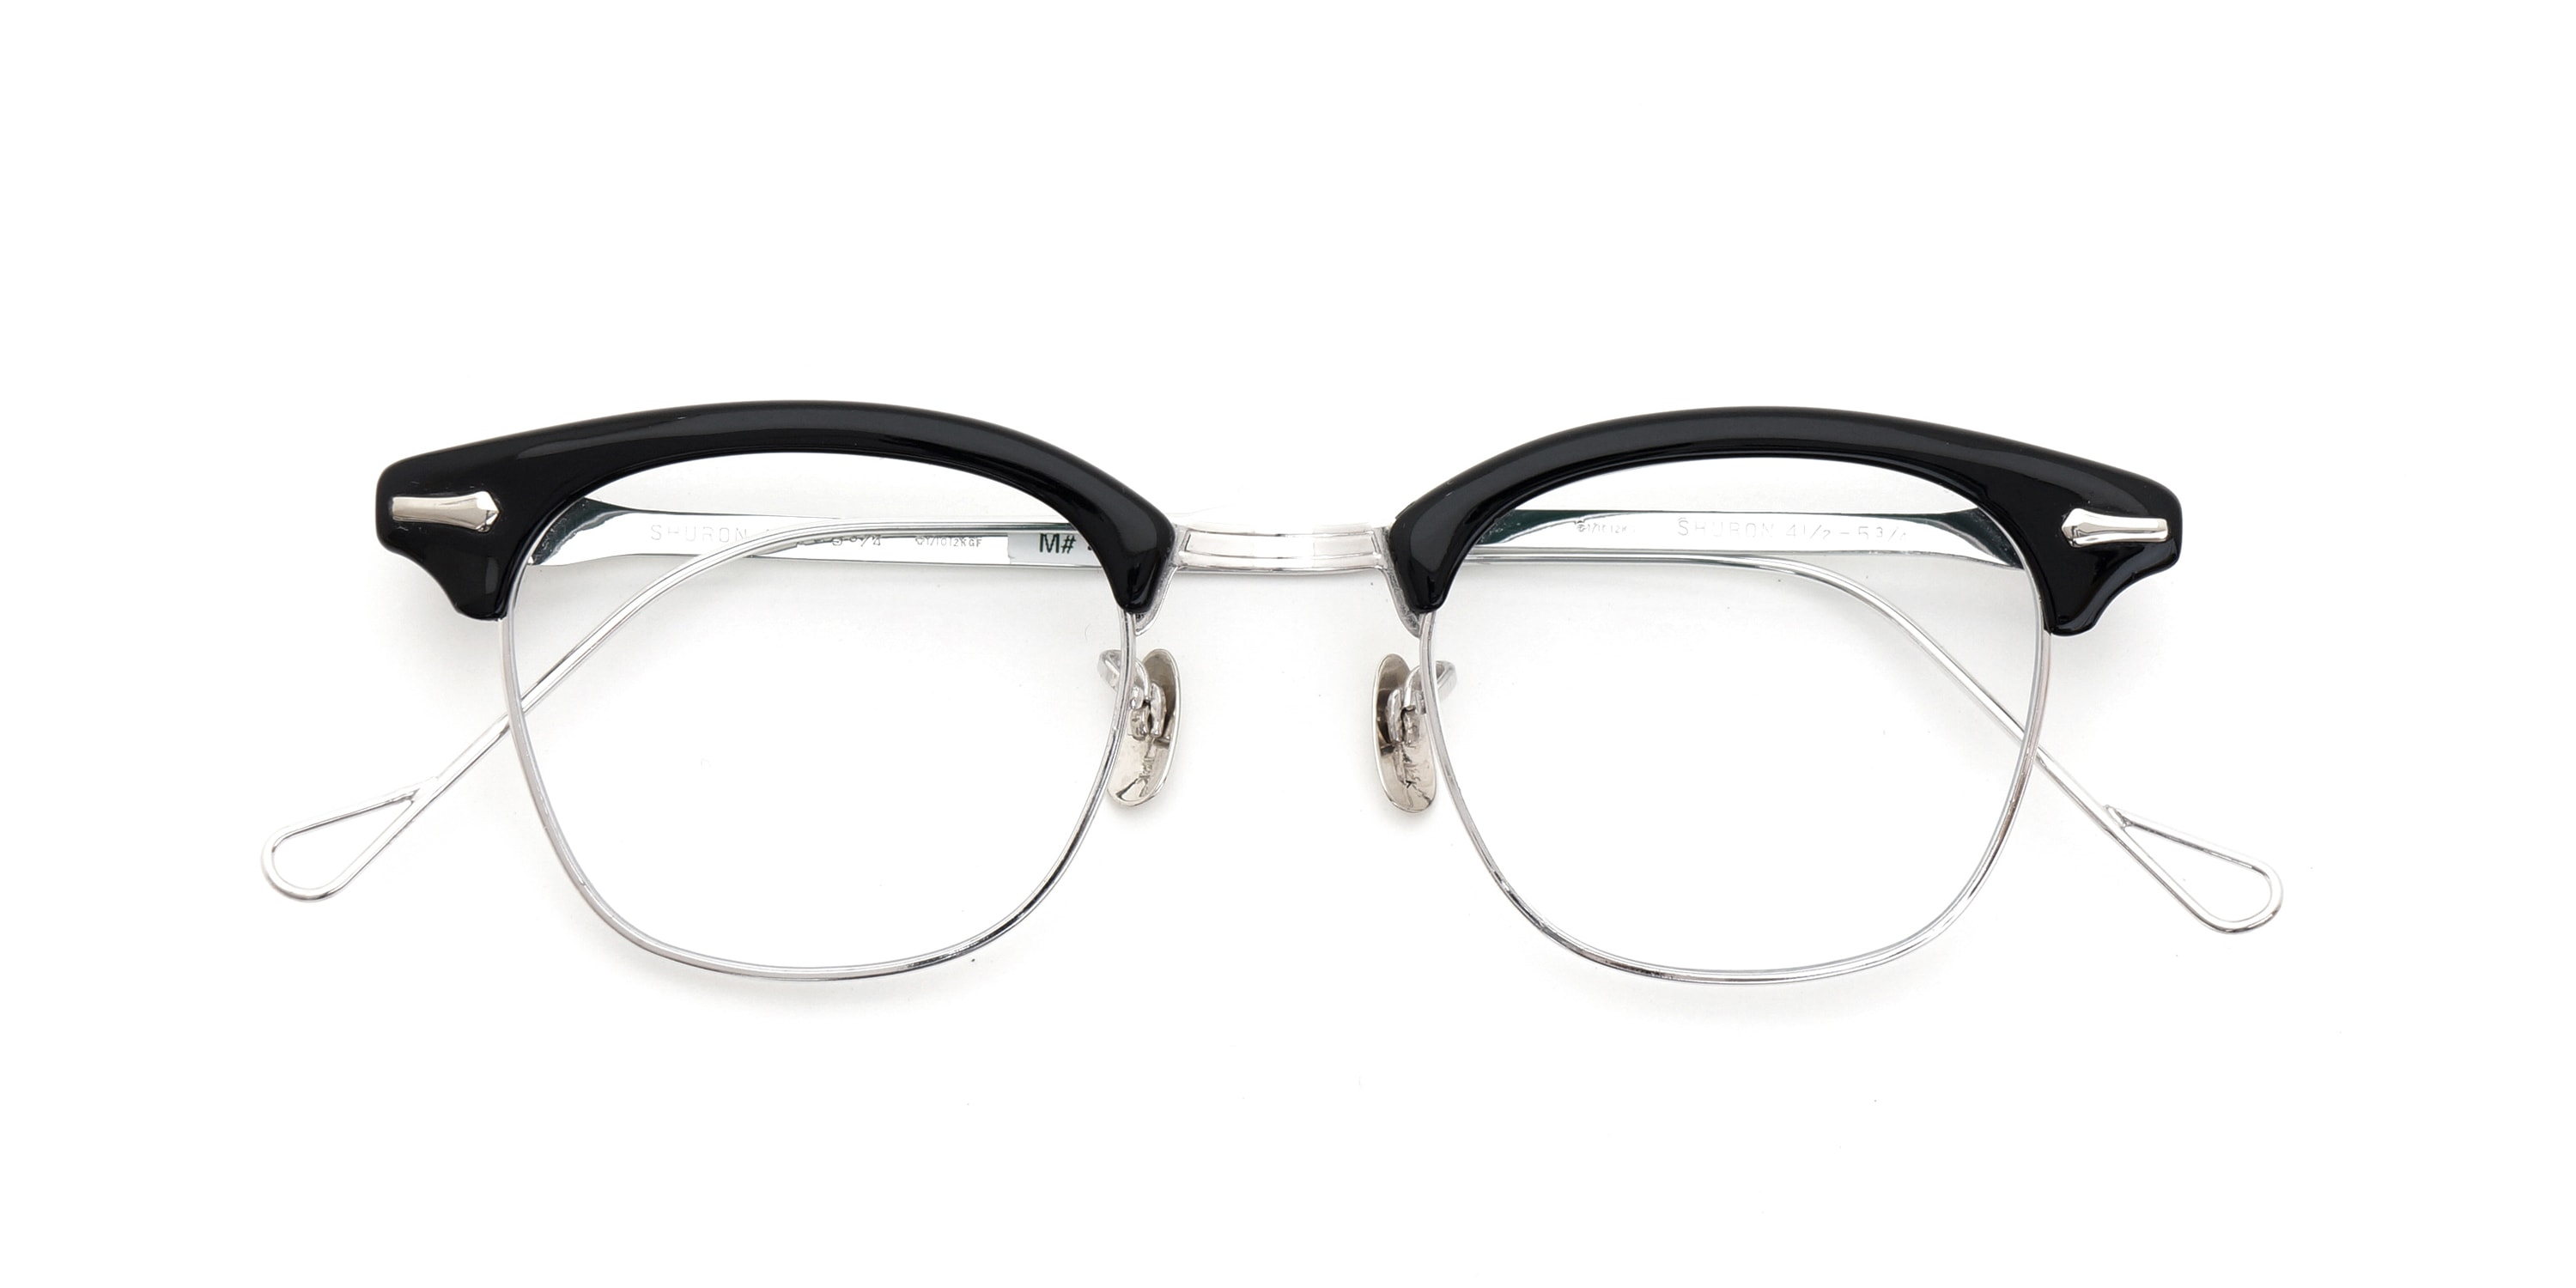 The Spectacle メガネ 1950s-1960s SHURON RONSIR GF-Temple Black WG 1/10 12KGF 46/22 イメージ6